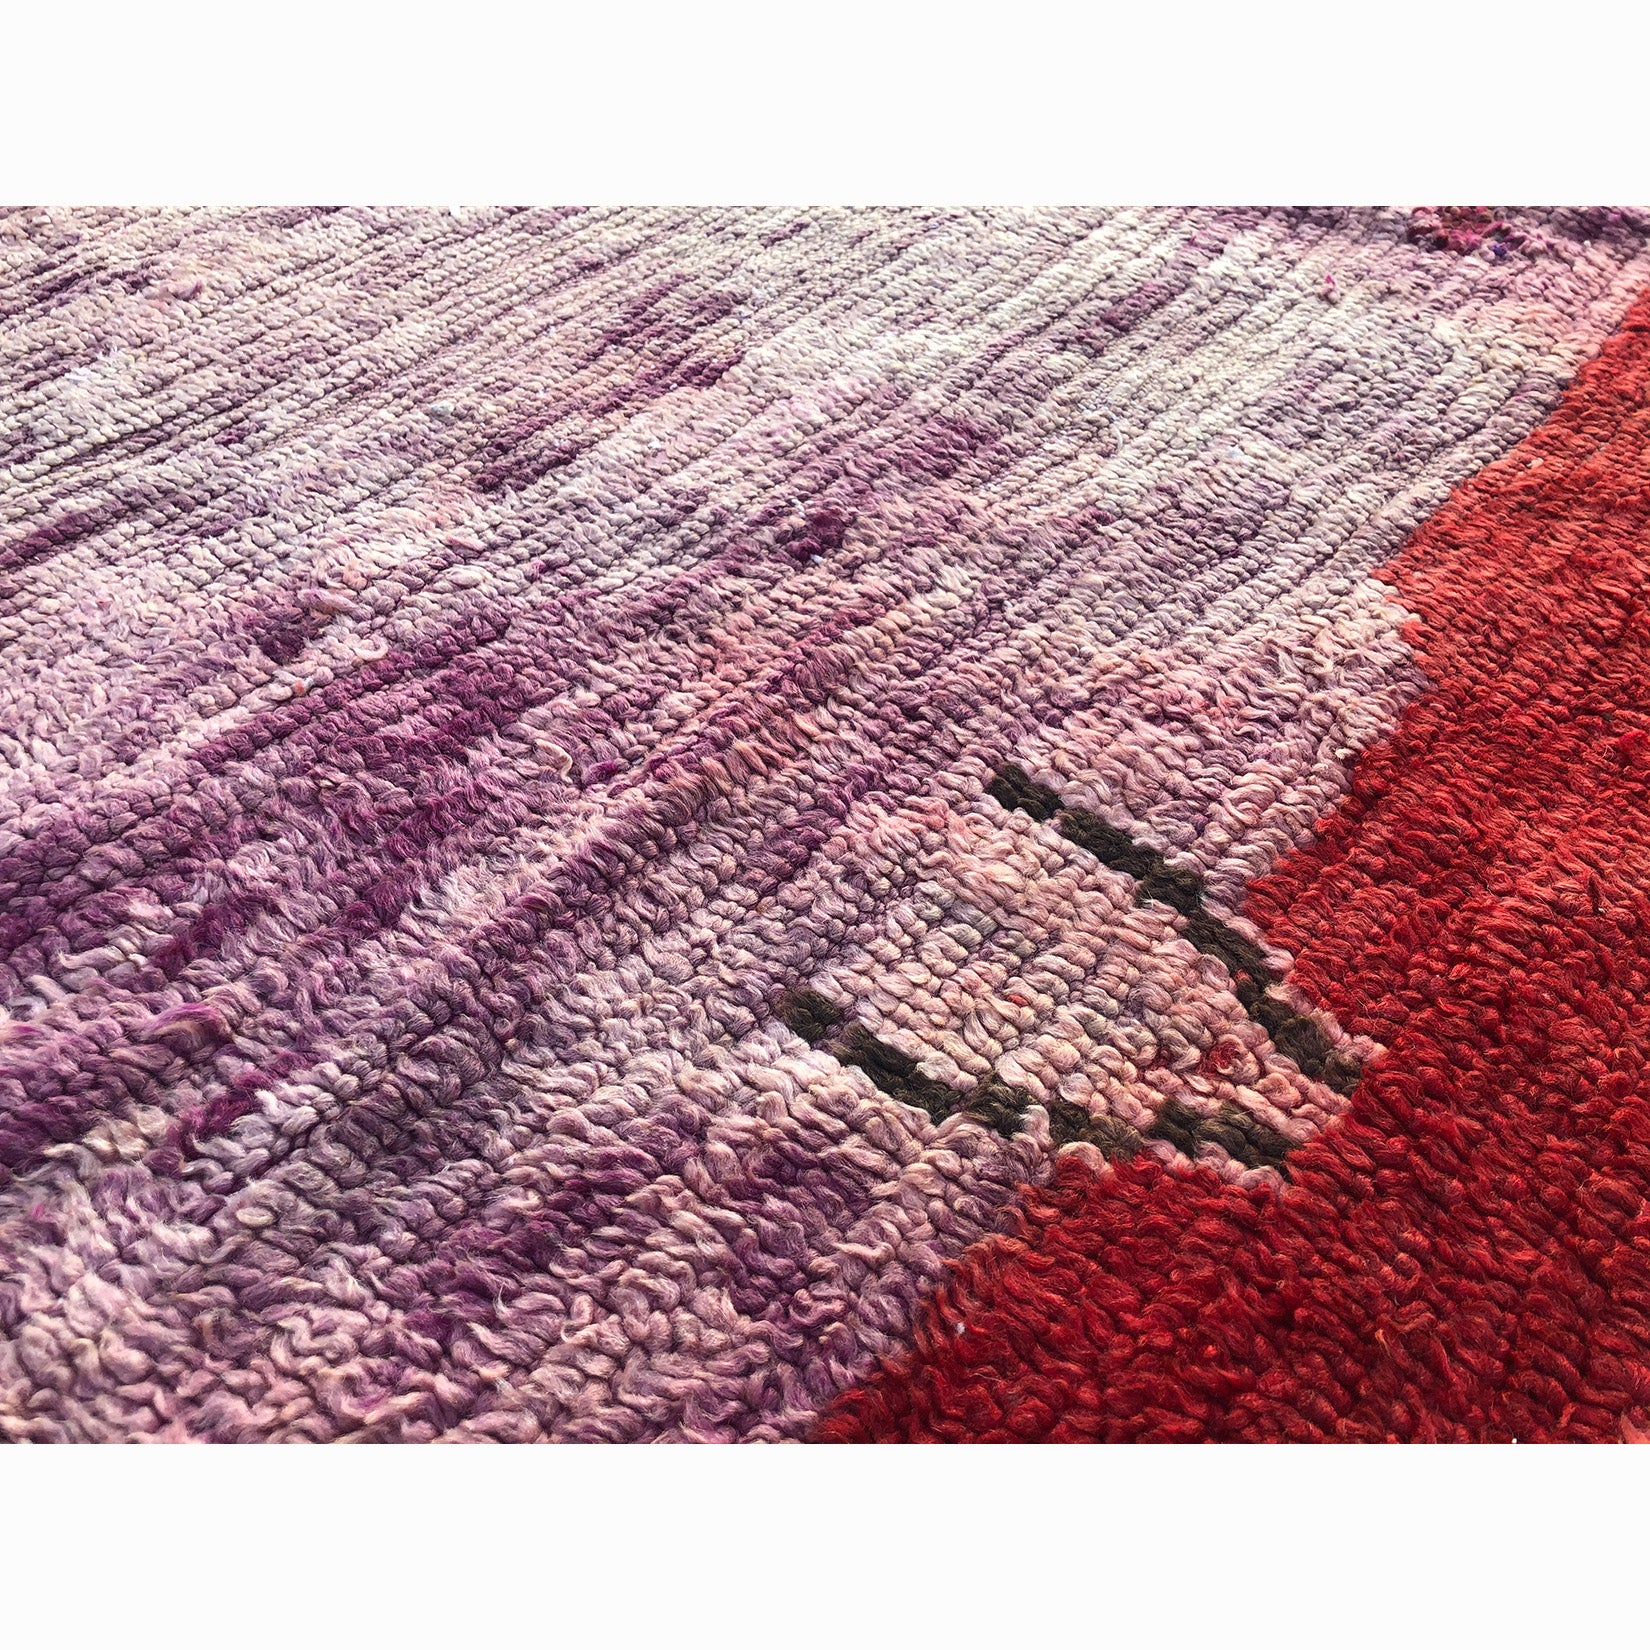 Pink and purple boho berber rug - Kantara | Moroccan Rugs